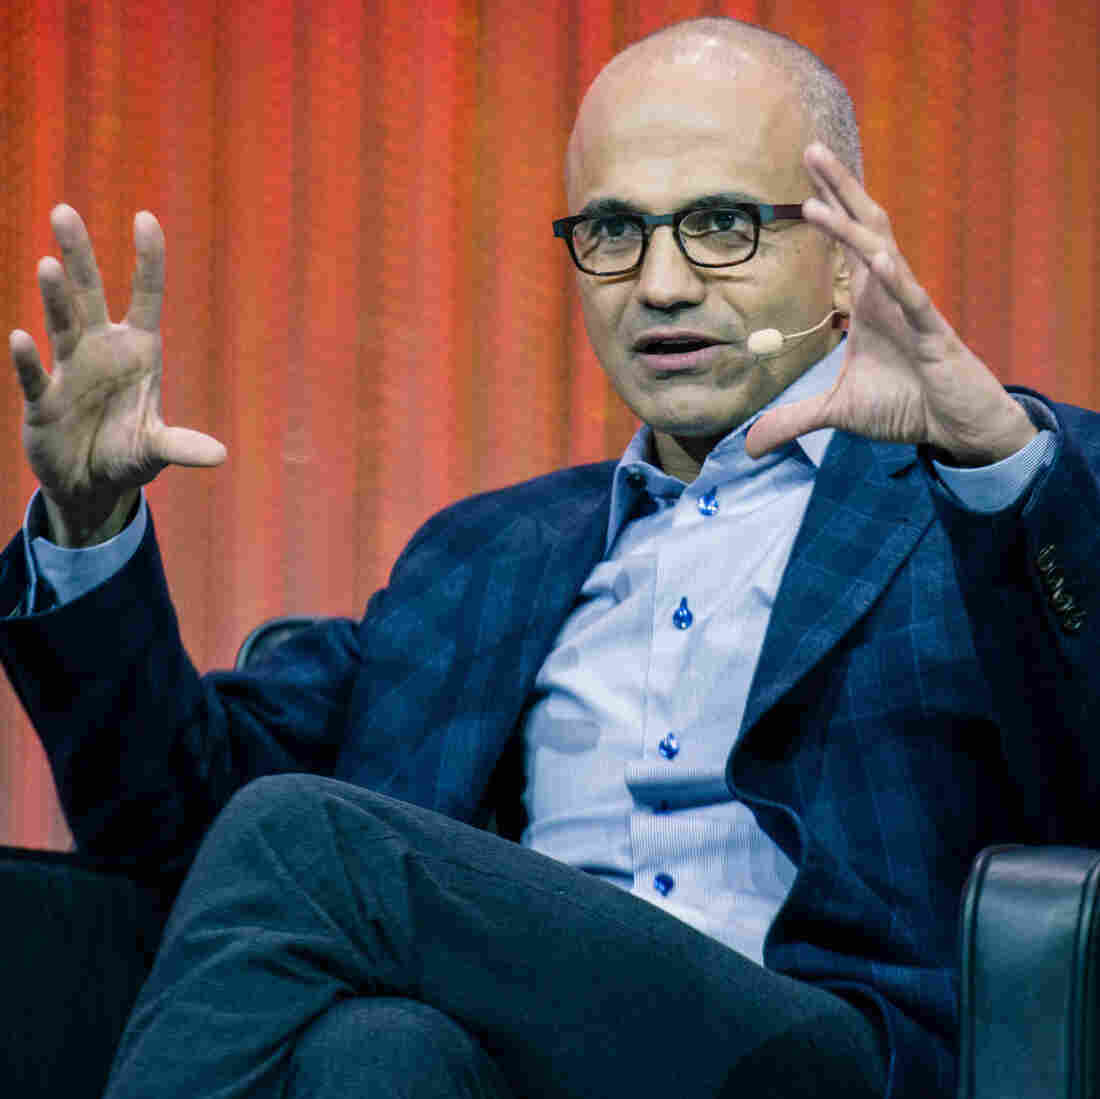 8 Things Worth Knowing About Microsoft's New CEO, Satya Nadella